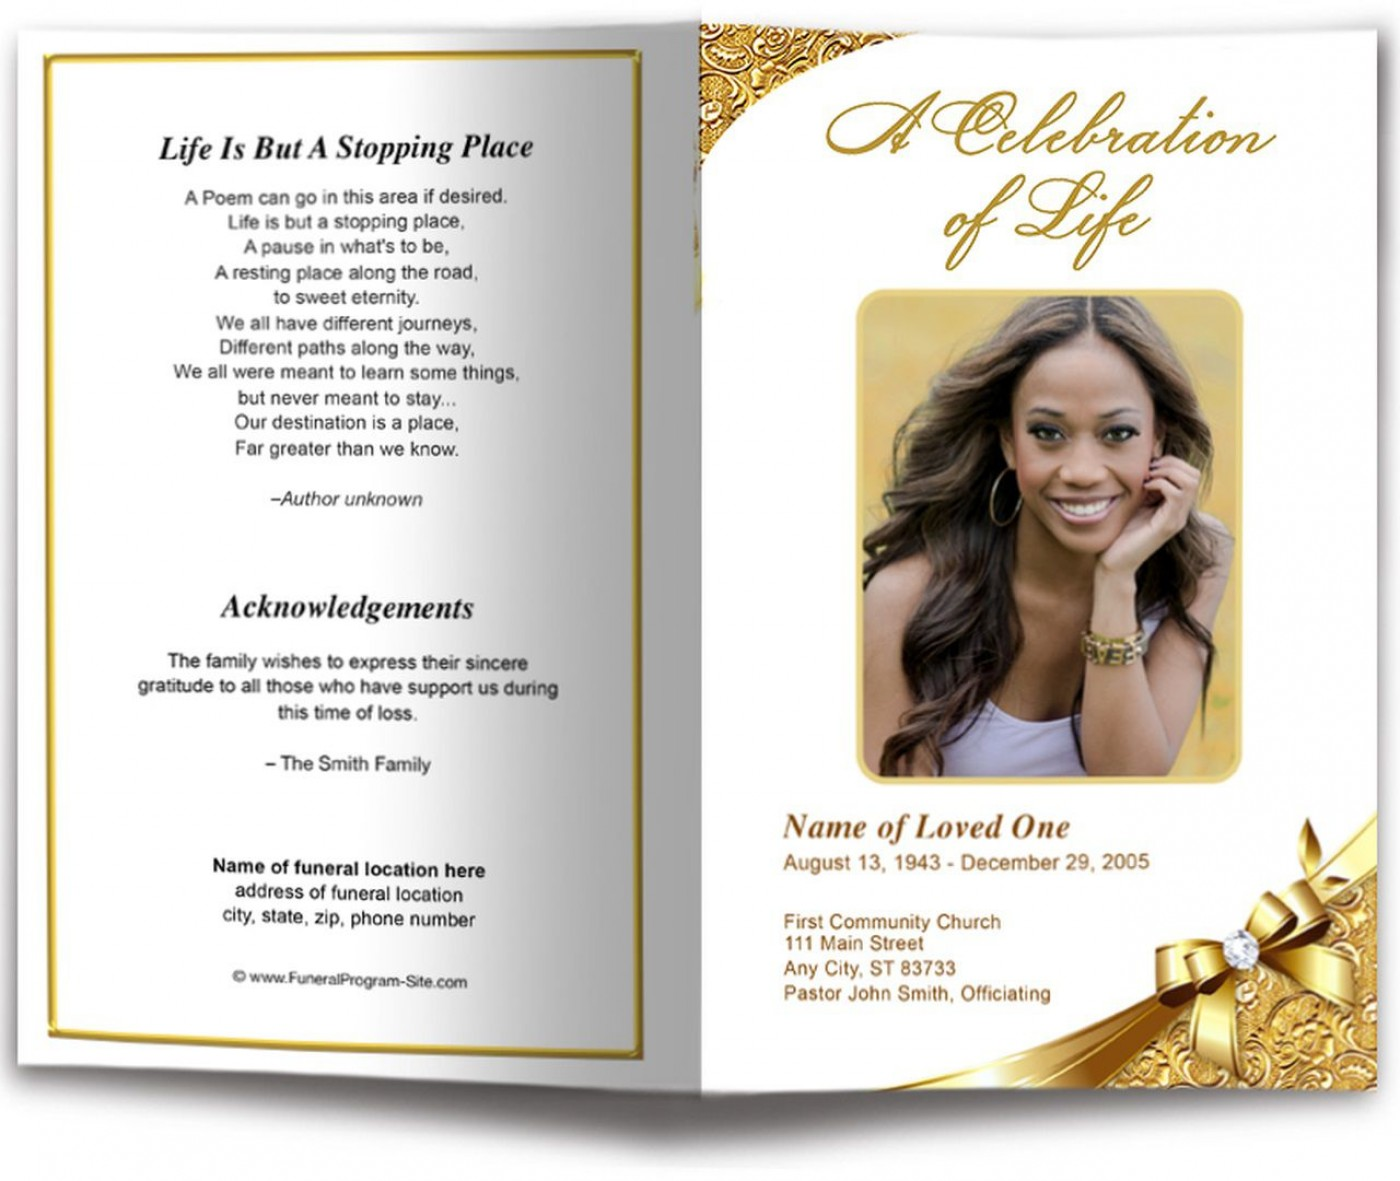 007 Astounding Funeral Program Template Free Example  Printable Design1400